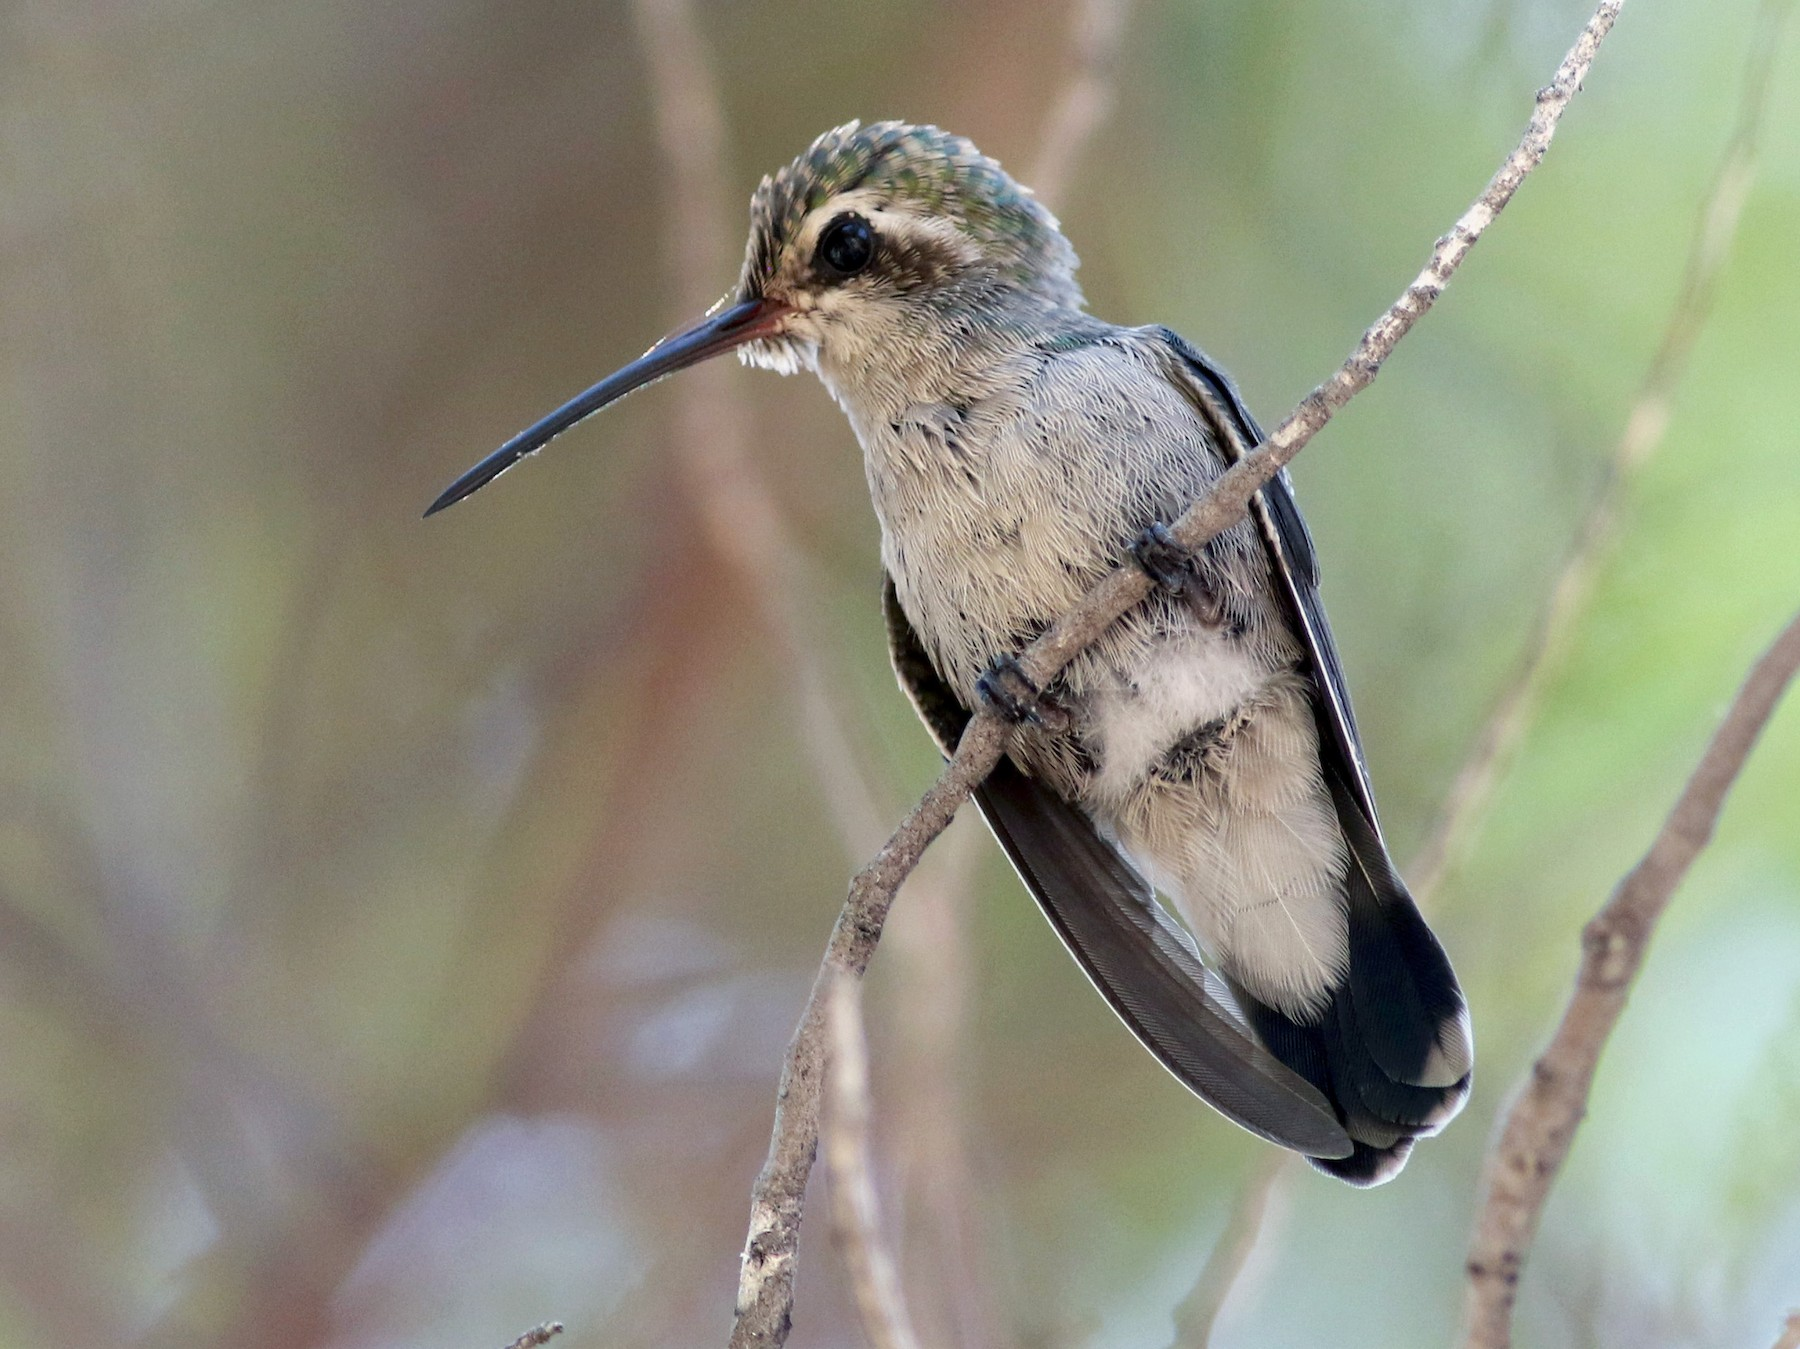 Broad-billed Hummingbird - Jay McGowan